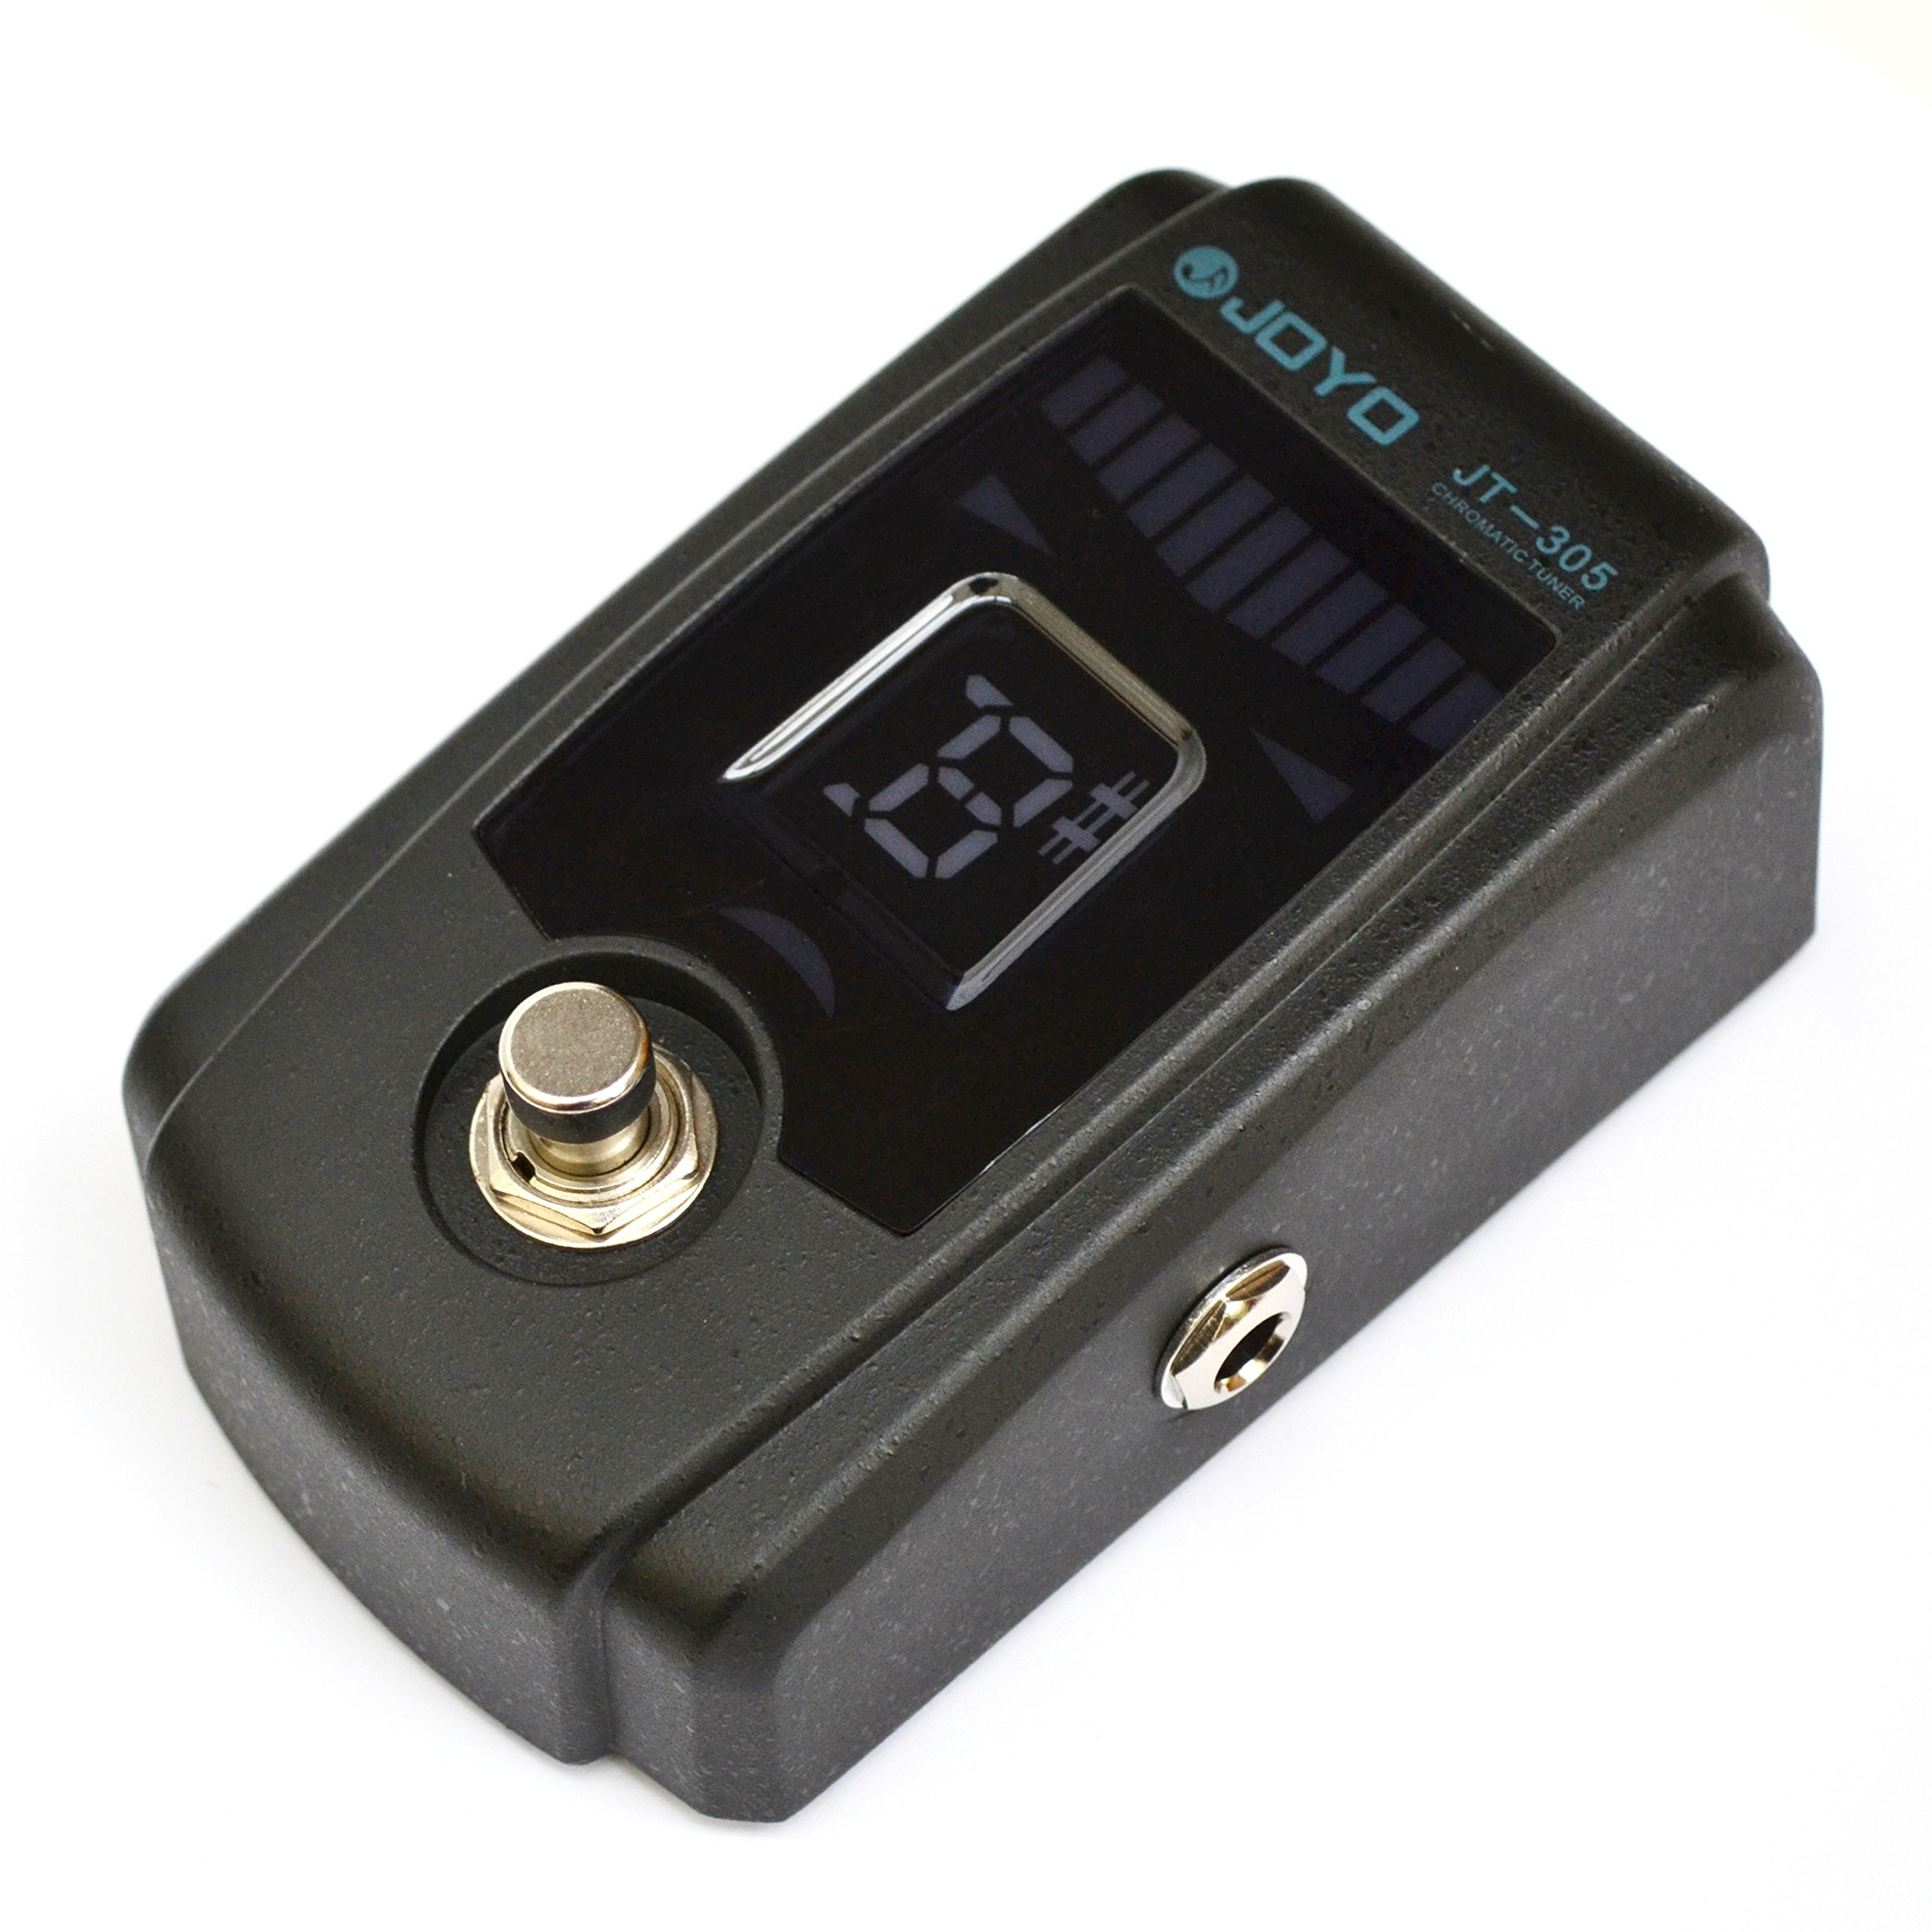 Joyo JT-305 Guitar Bass Chromatic Pedal Tuner, True Bypass, 4 Display Modes by Pink Lizard Products